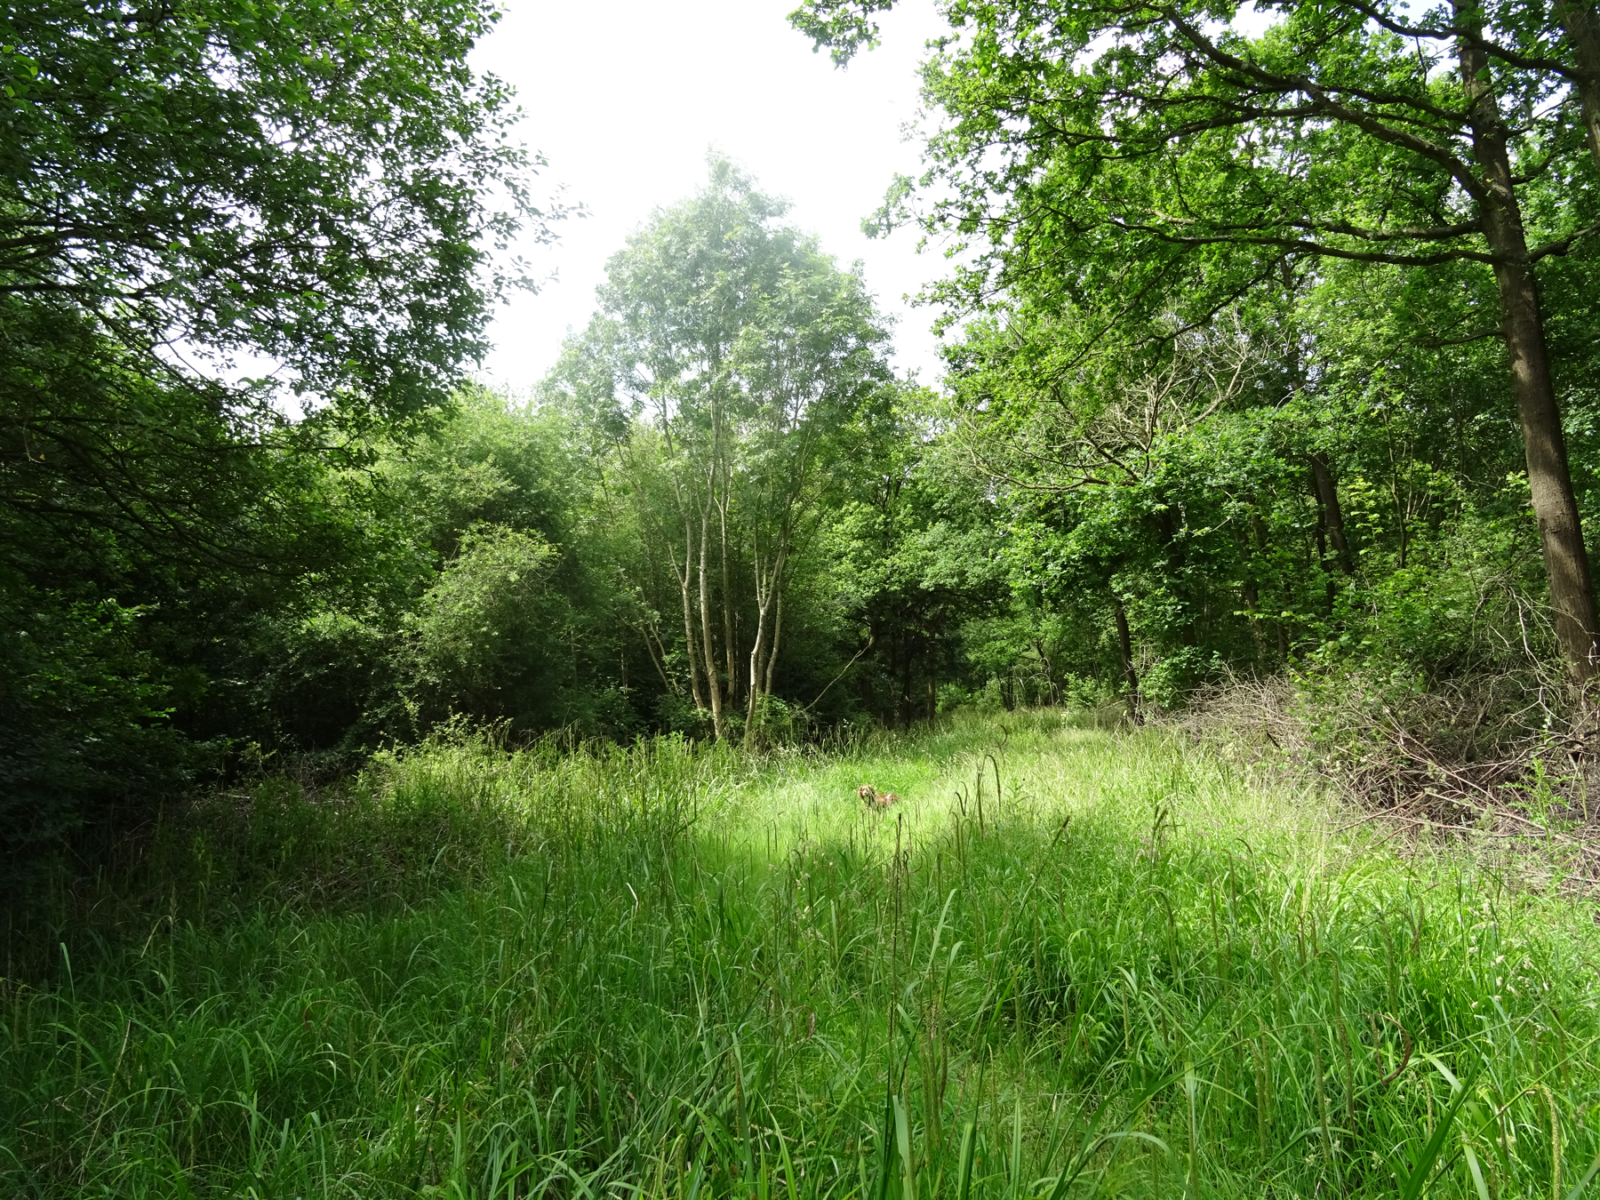 Wicken Wood: General Comments on the Woodland